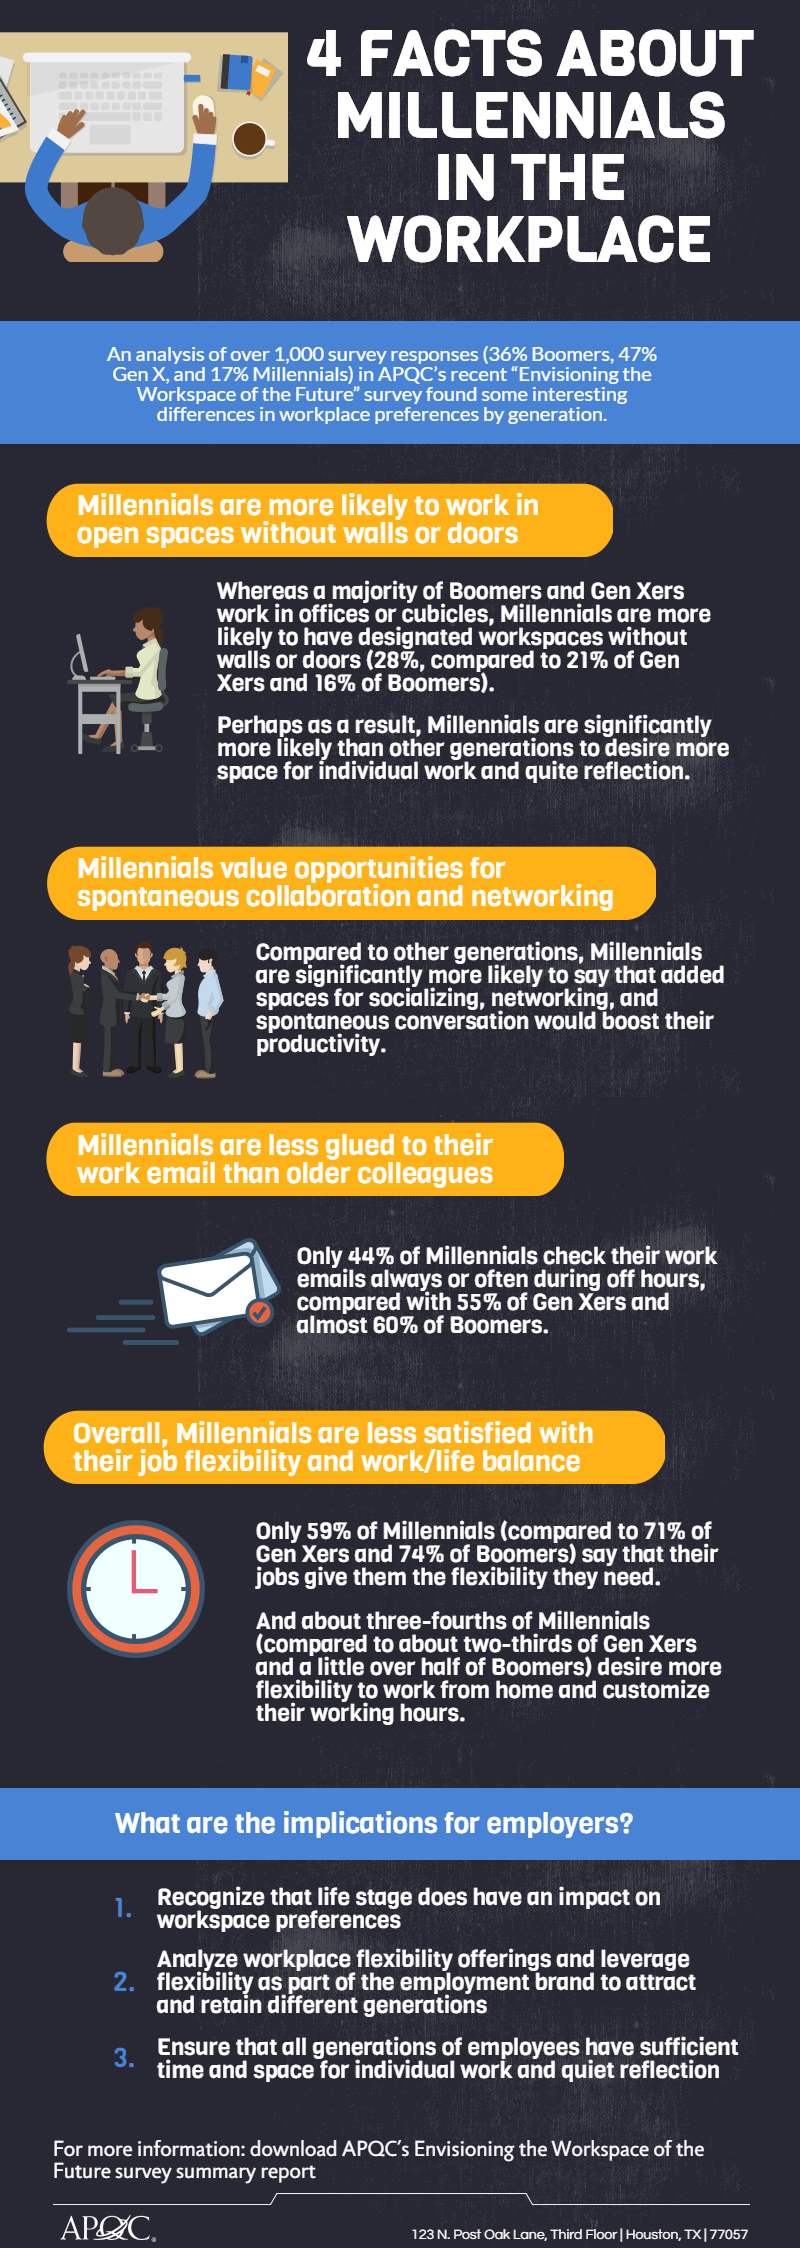 Data on Millennials in the Workplace